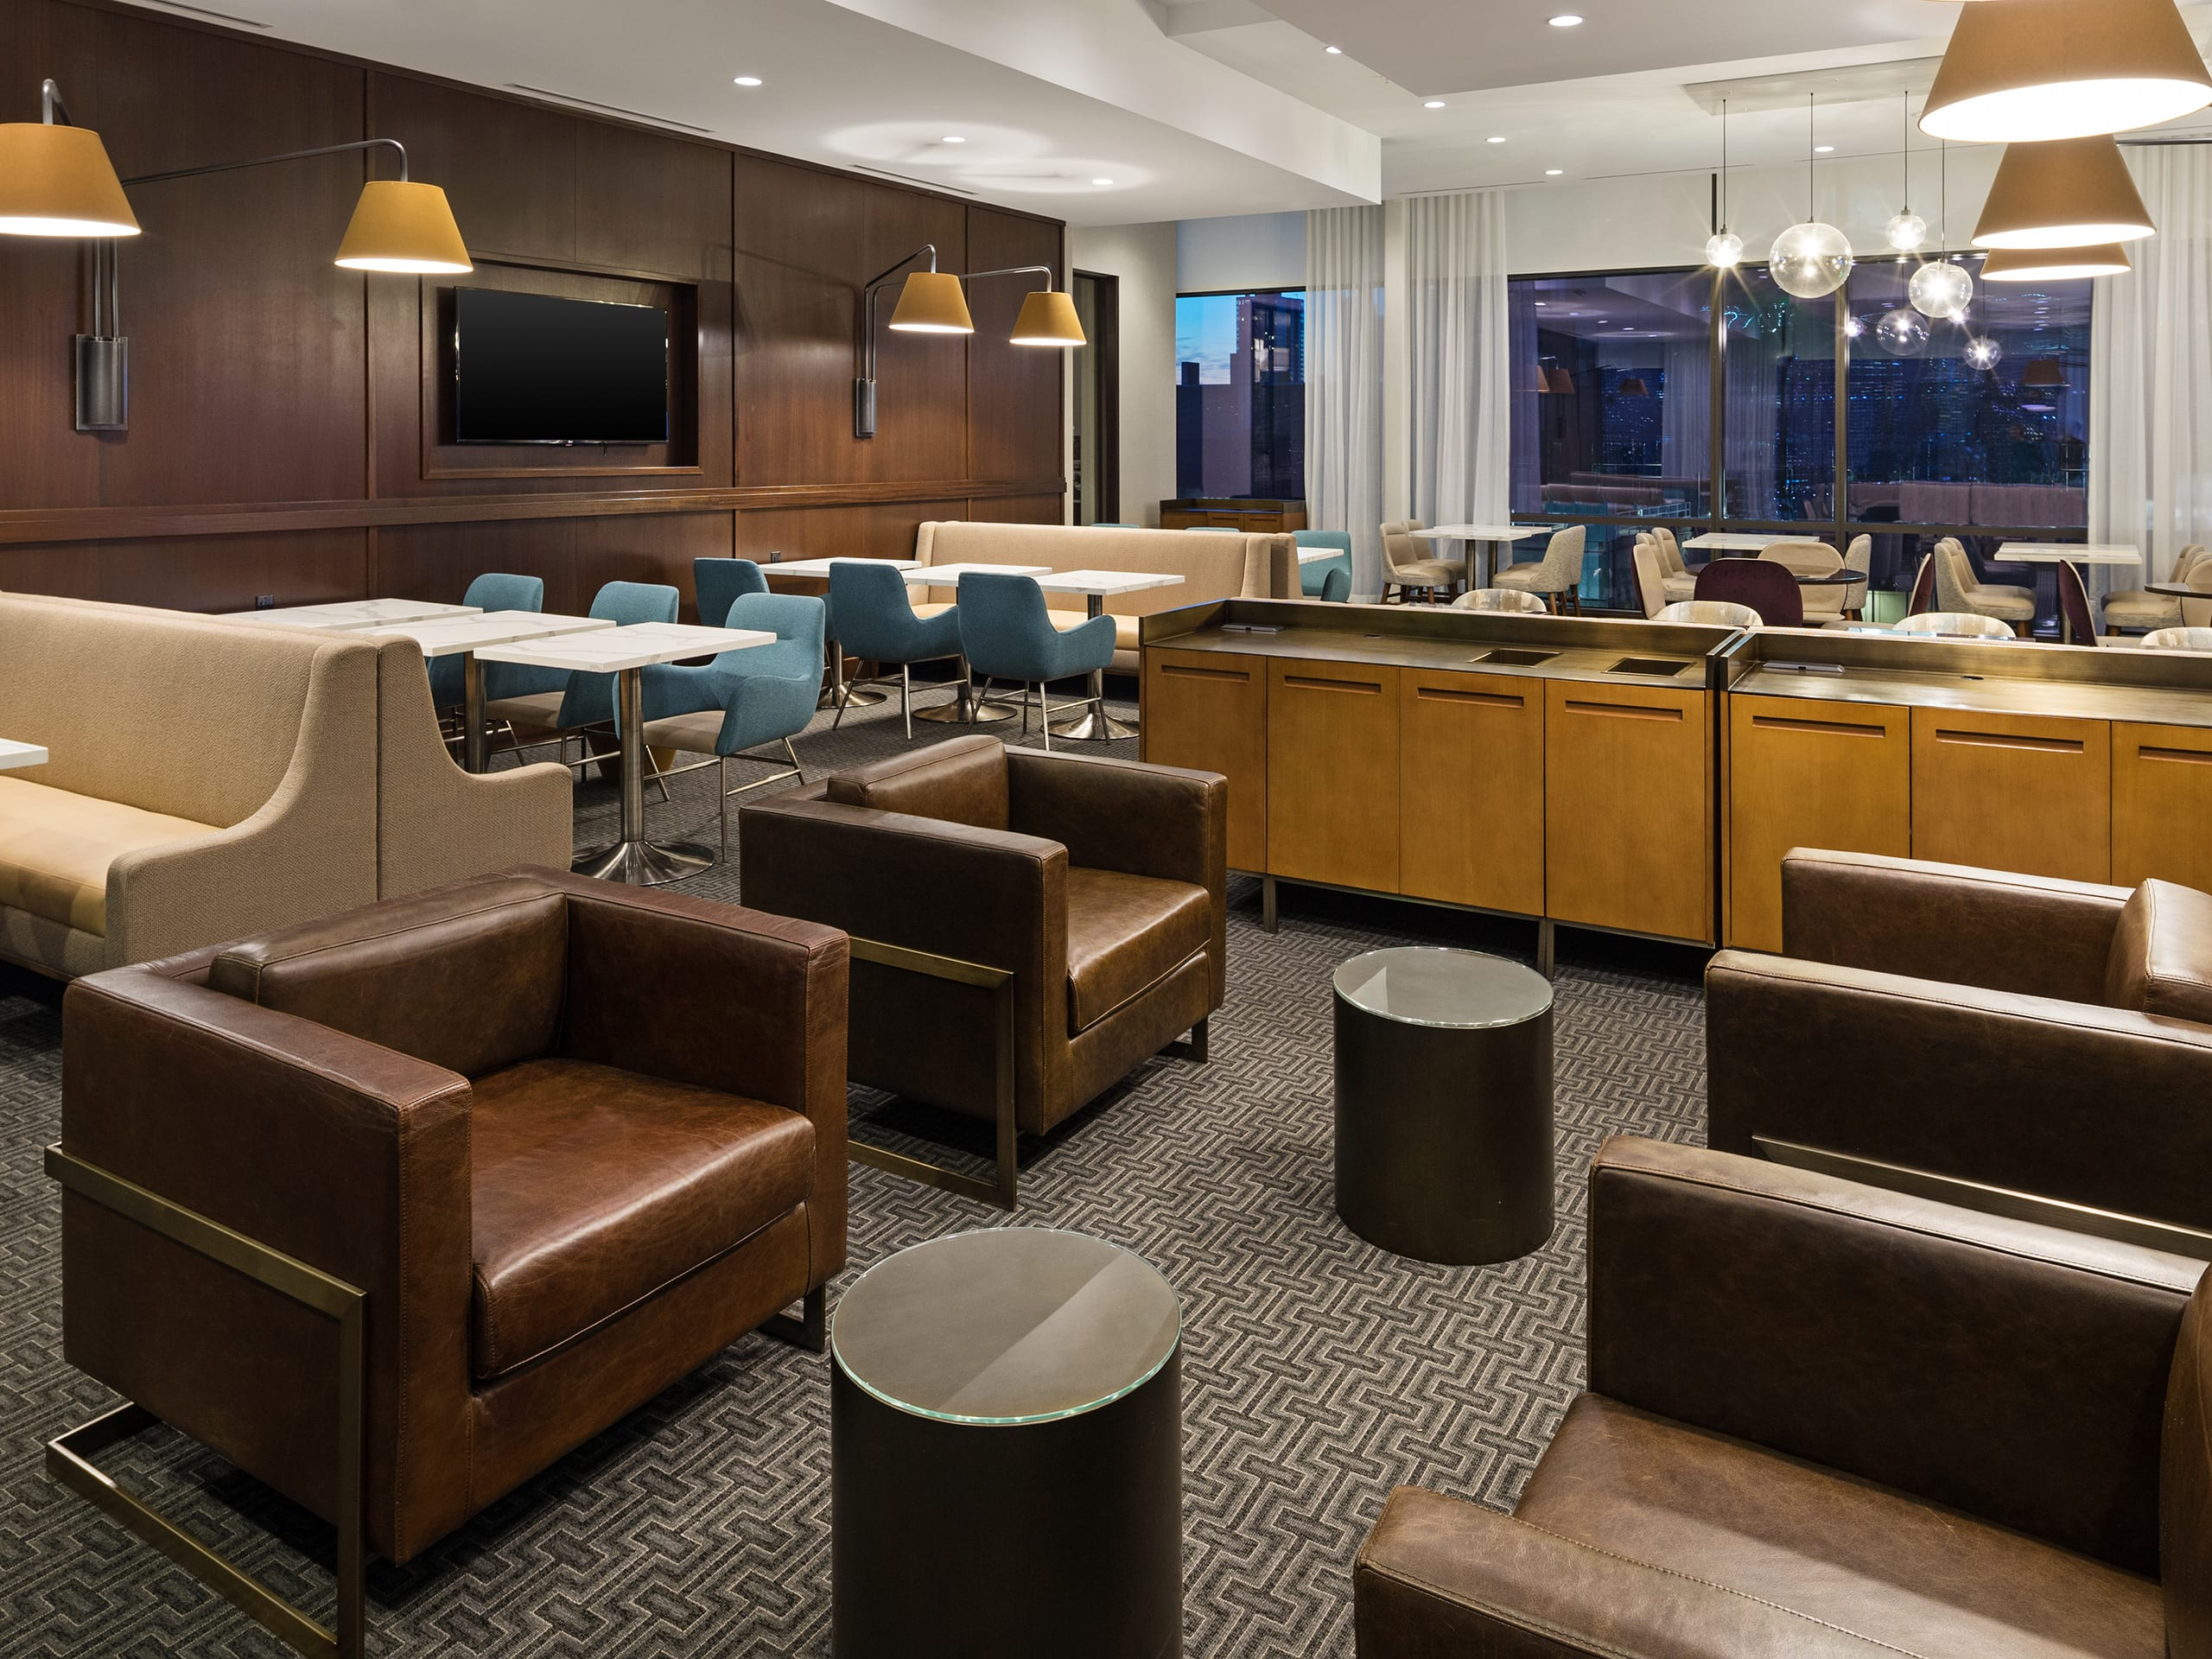 Relaxing Hotel Near the Statue of Liberty | Hyatt House Jersey City